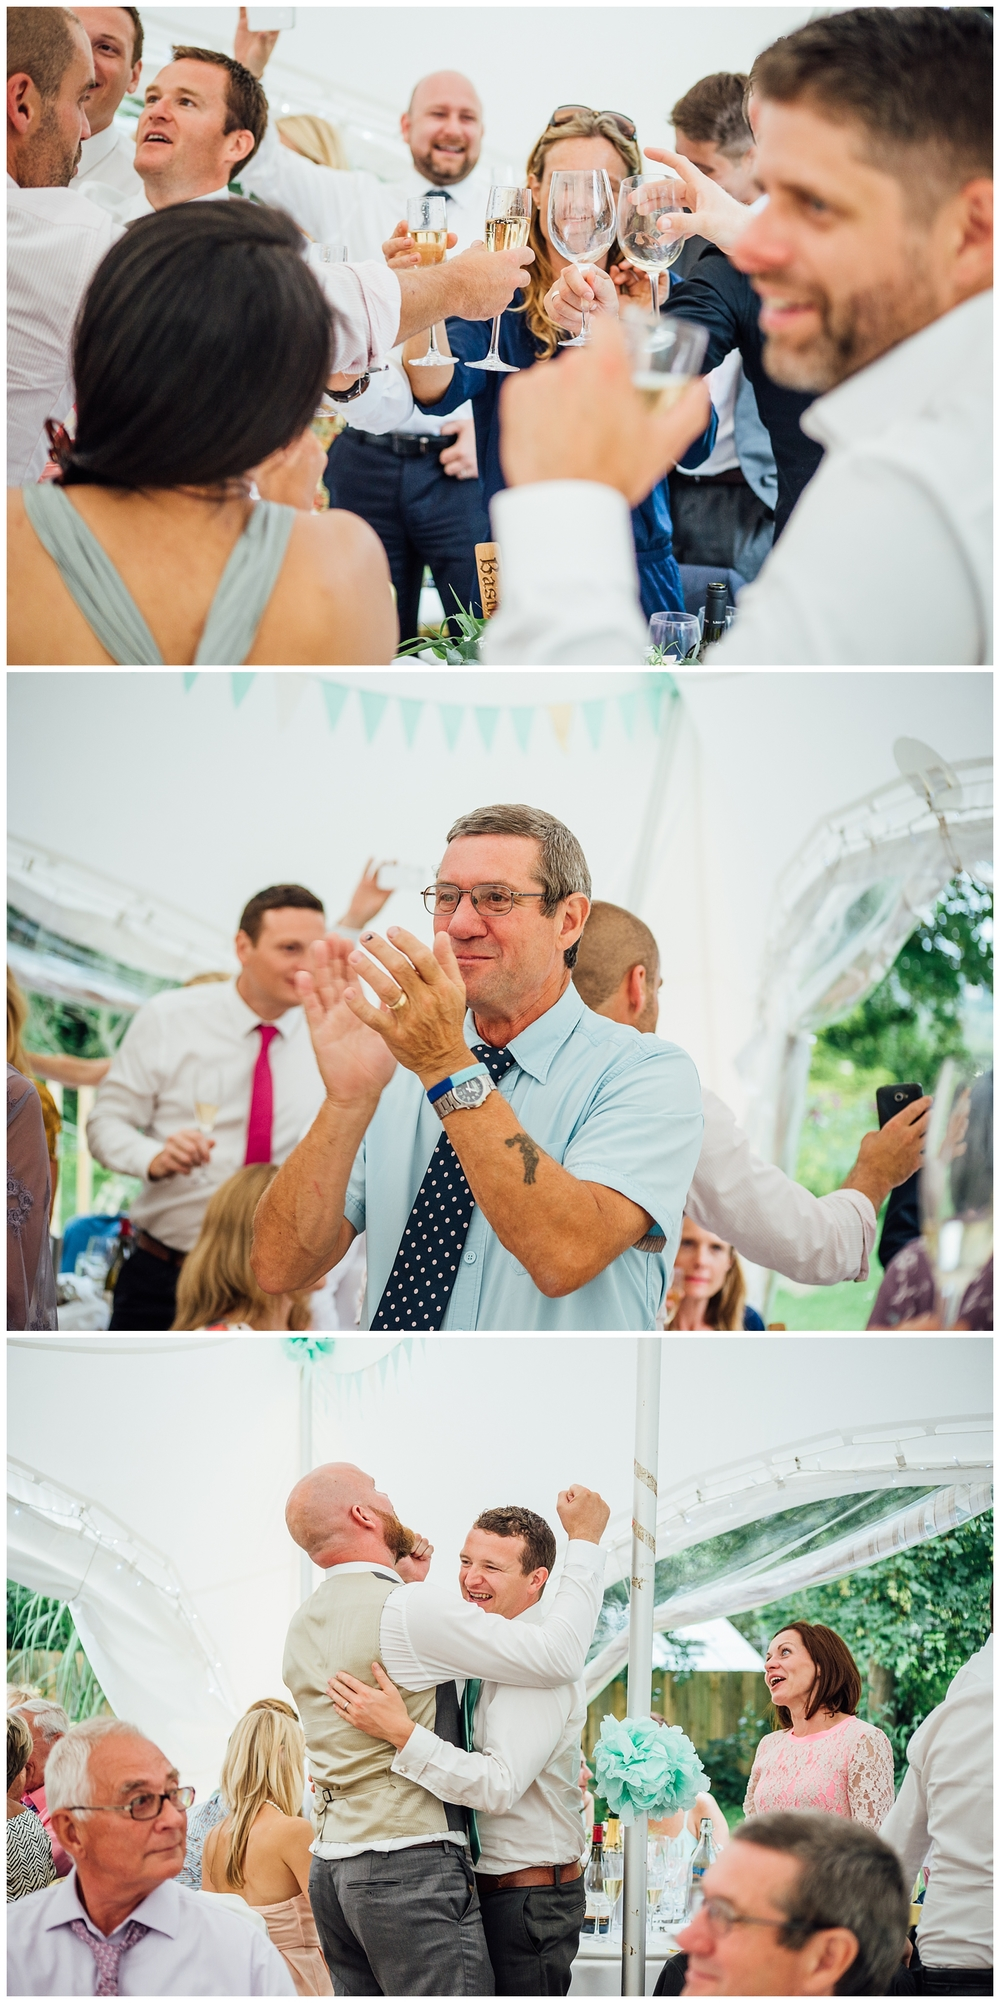 Nikki_Cooper_Photography_Lucy&Scott_Wedding_Photos_The_Crab_Tree_Pub_Horsham_1123.jpg